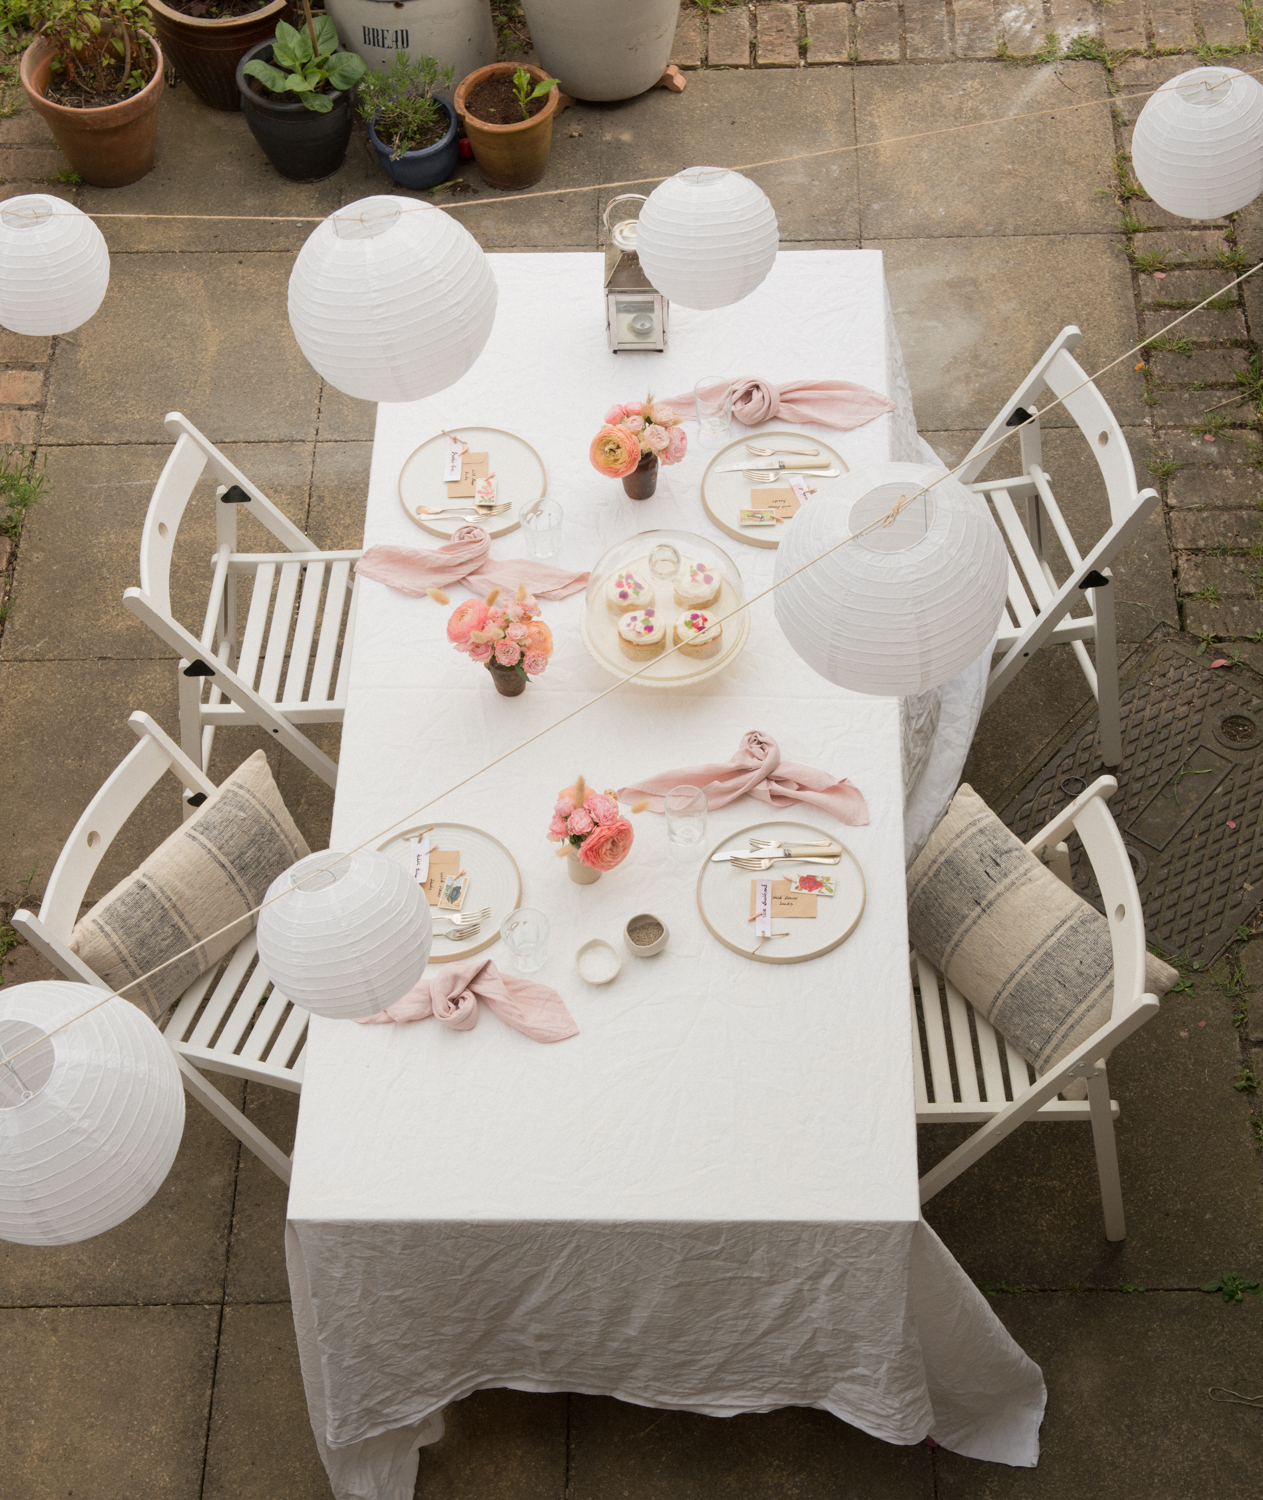 How to lay the table, outdoor afternoon tea, handmade plates, linen, DIY place settings, white paper lanterns